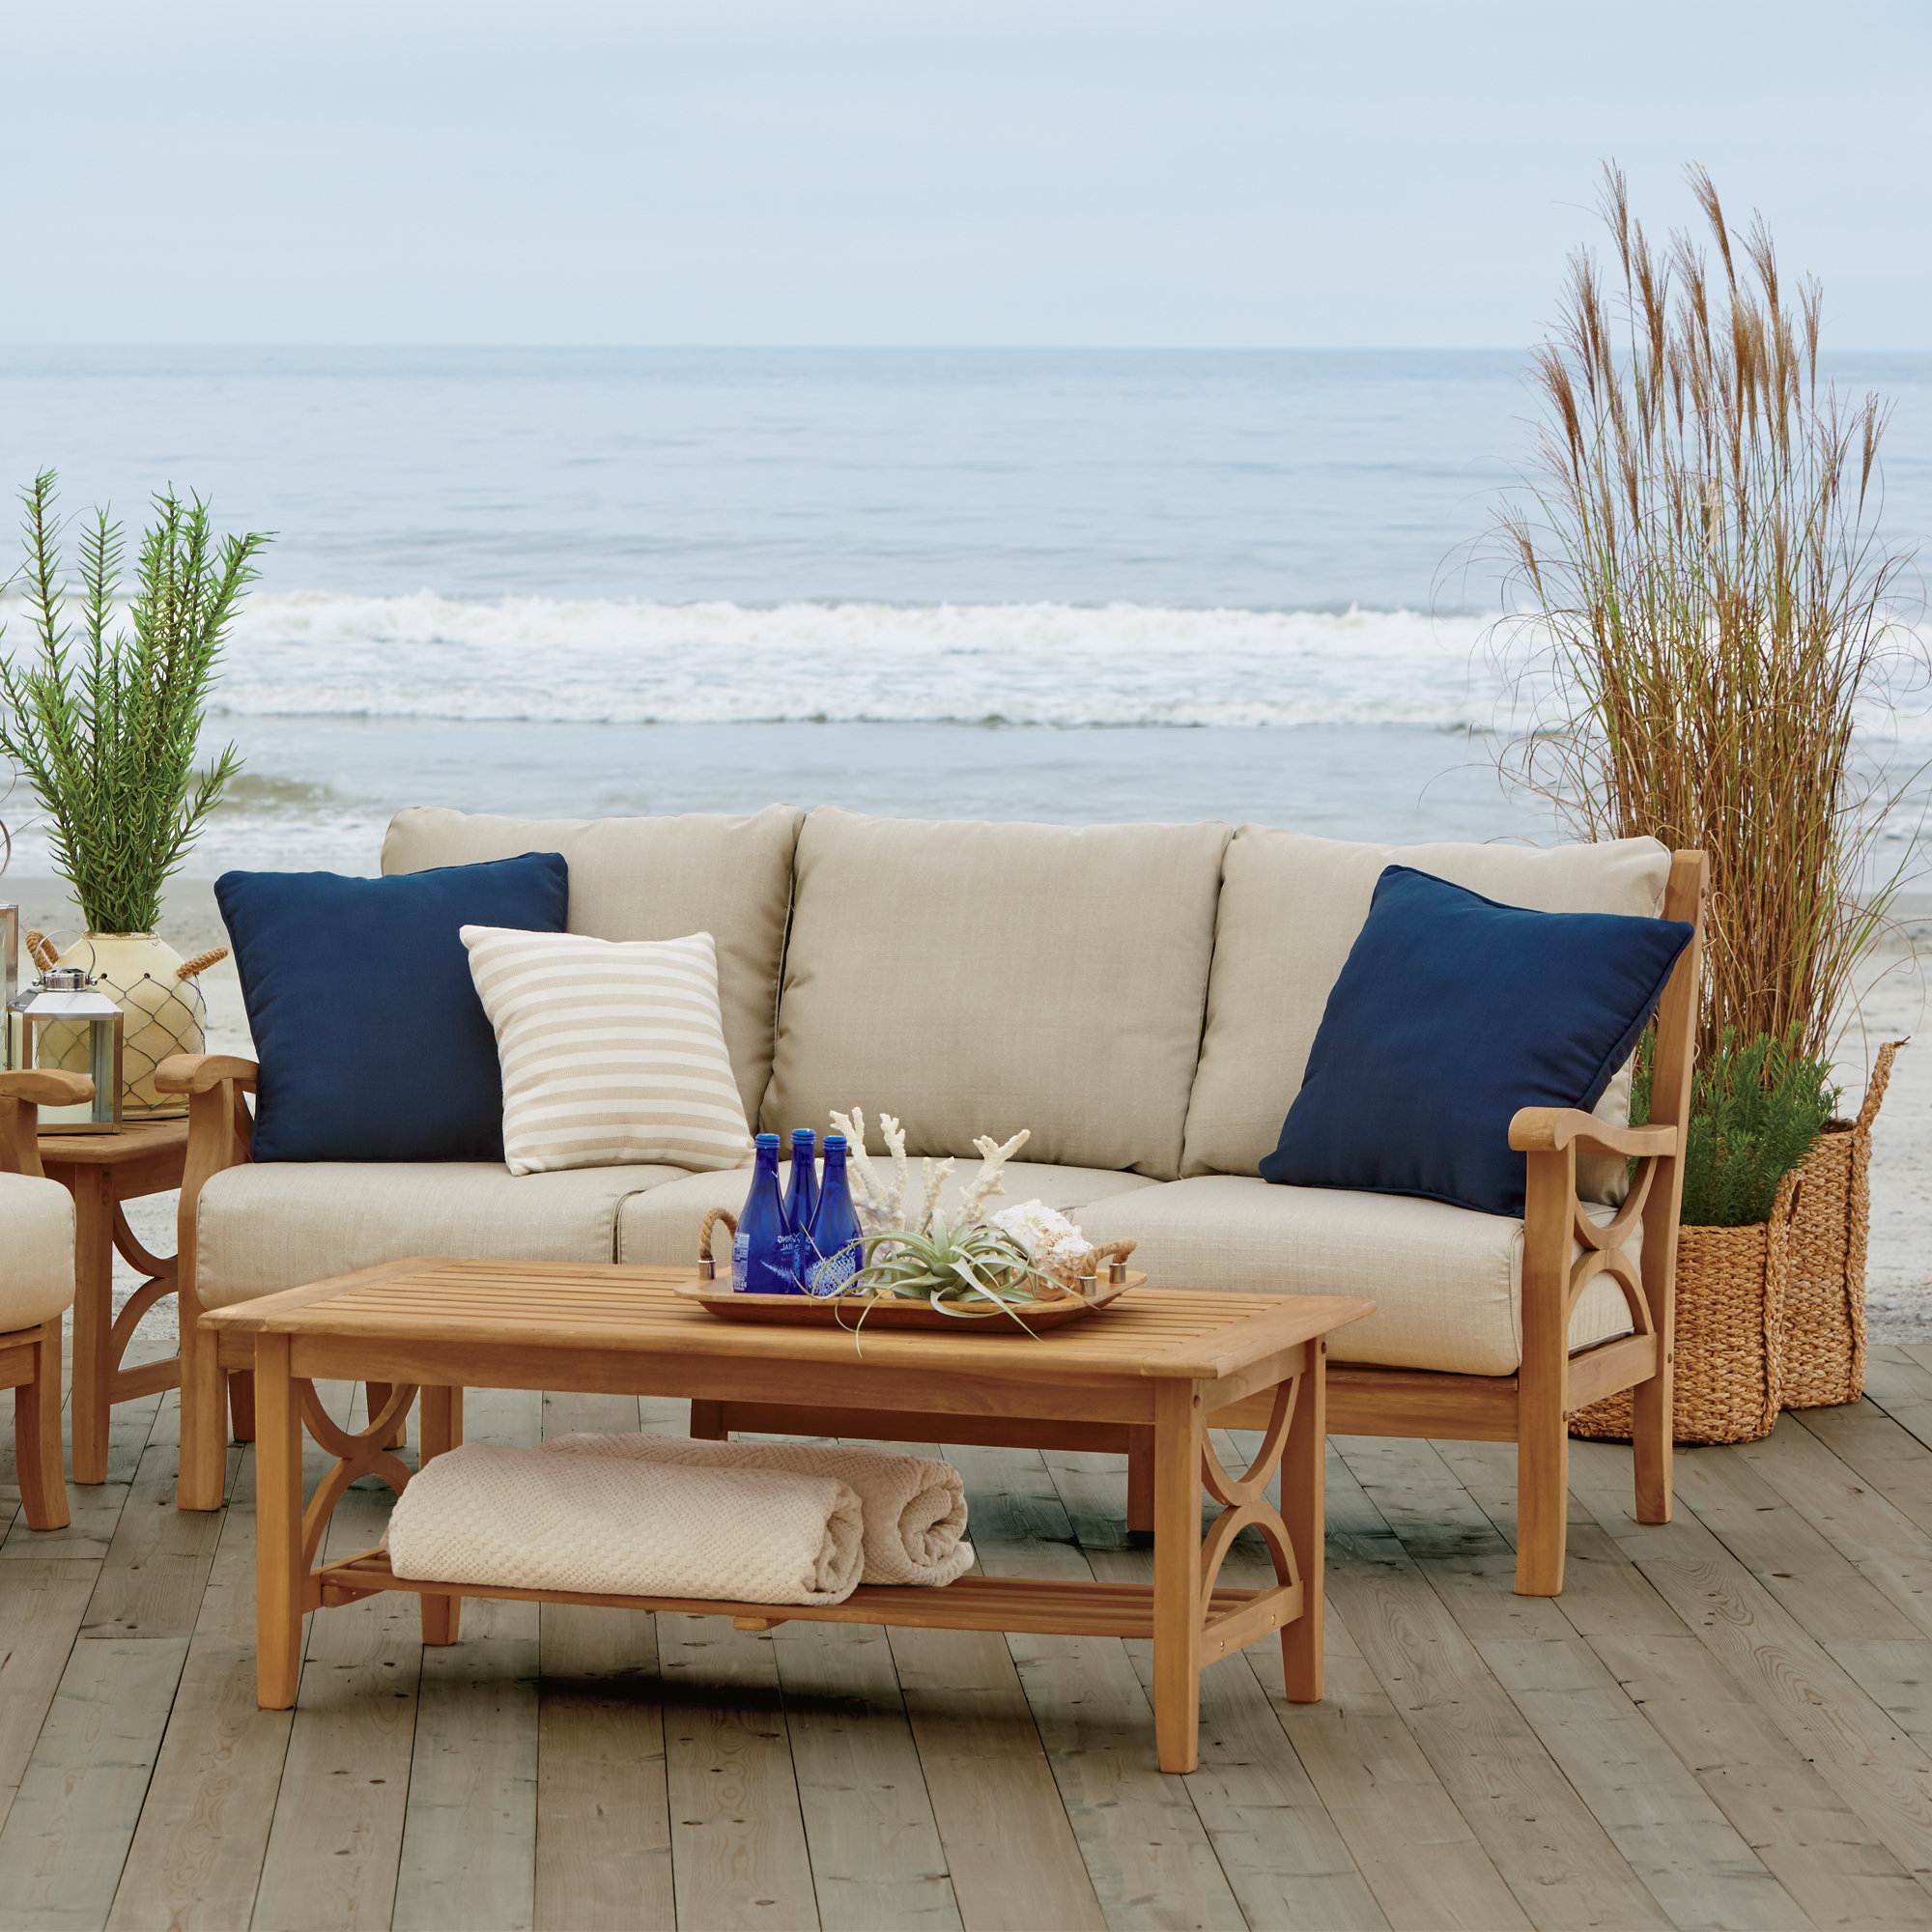 Brunswick Teak Patio Sofa With Cushions For Best And Newest Lakeland Teak Loveseats With Cushions (Gallery 16 of 20)